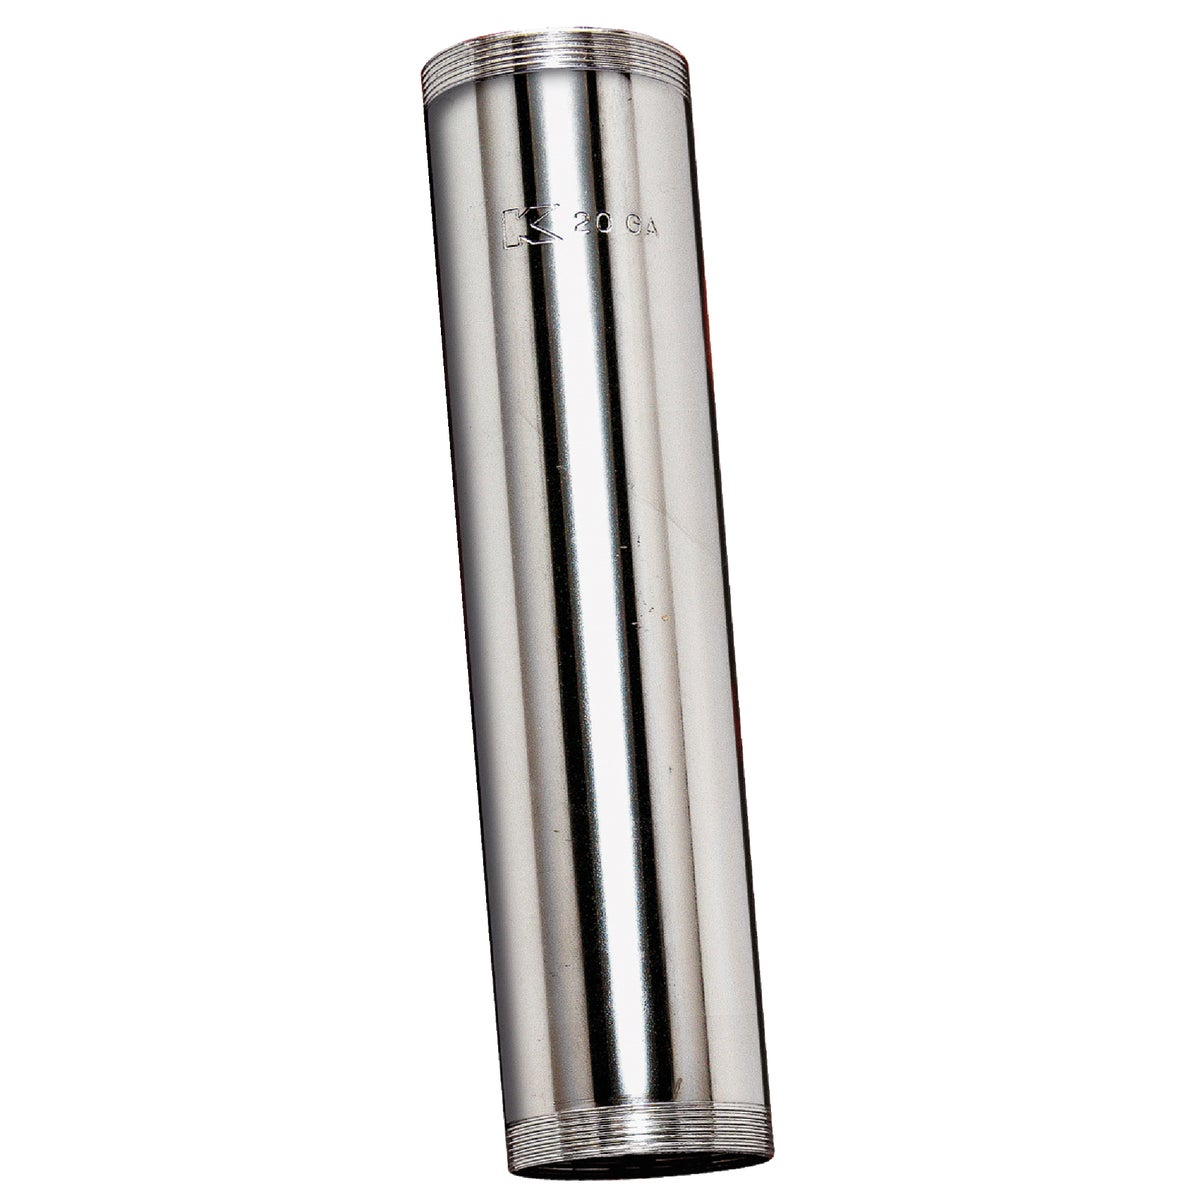 1-1/2X6 THREADED TUBE